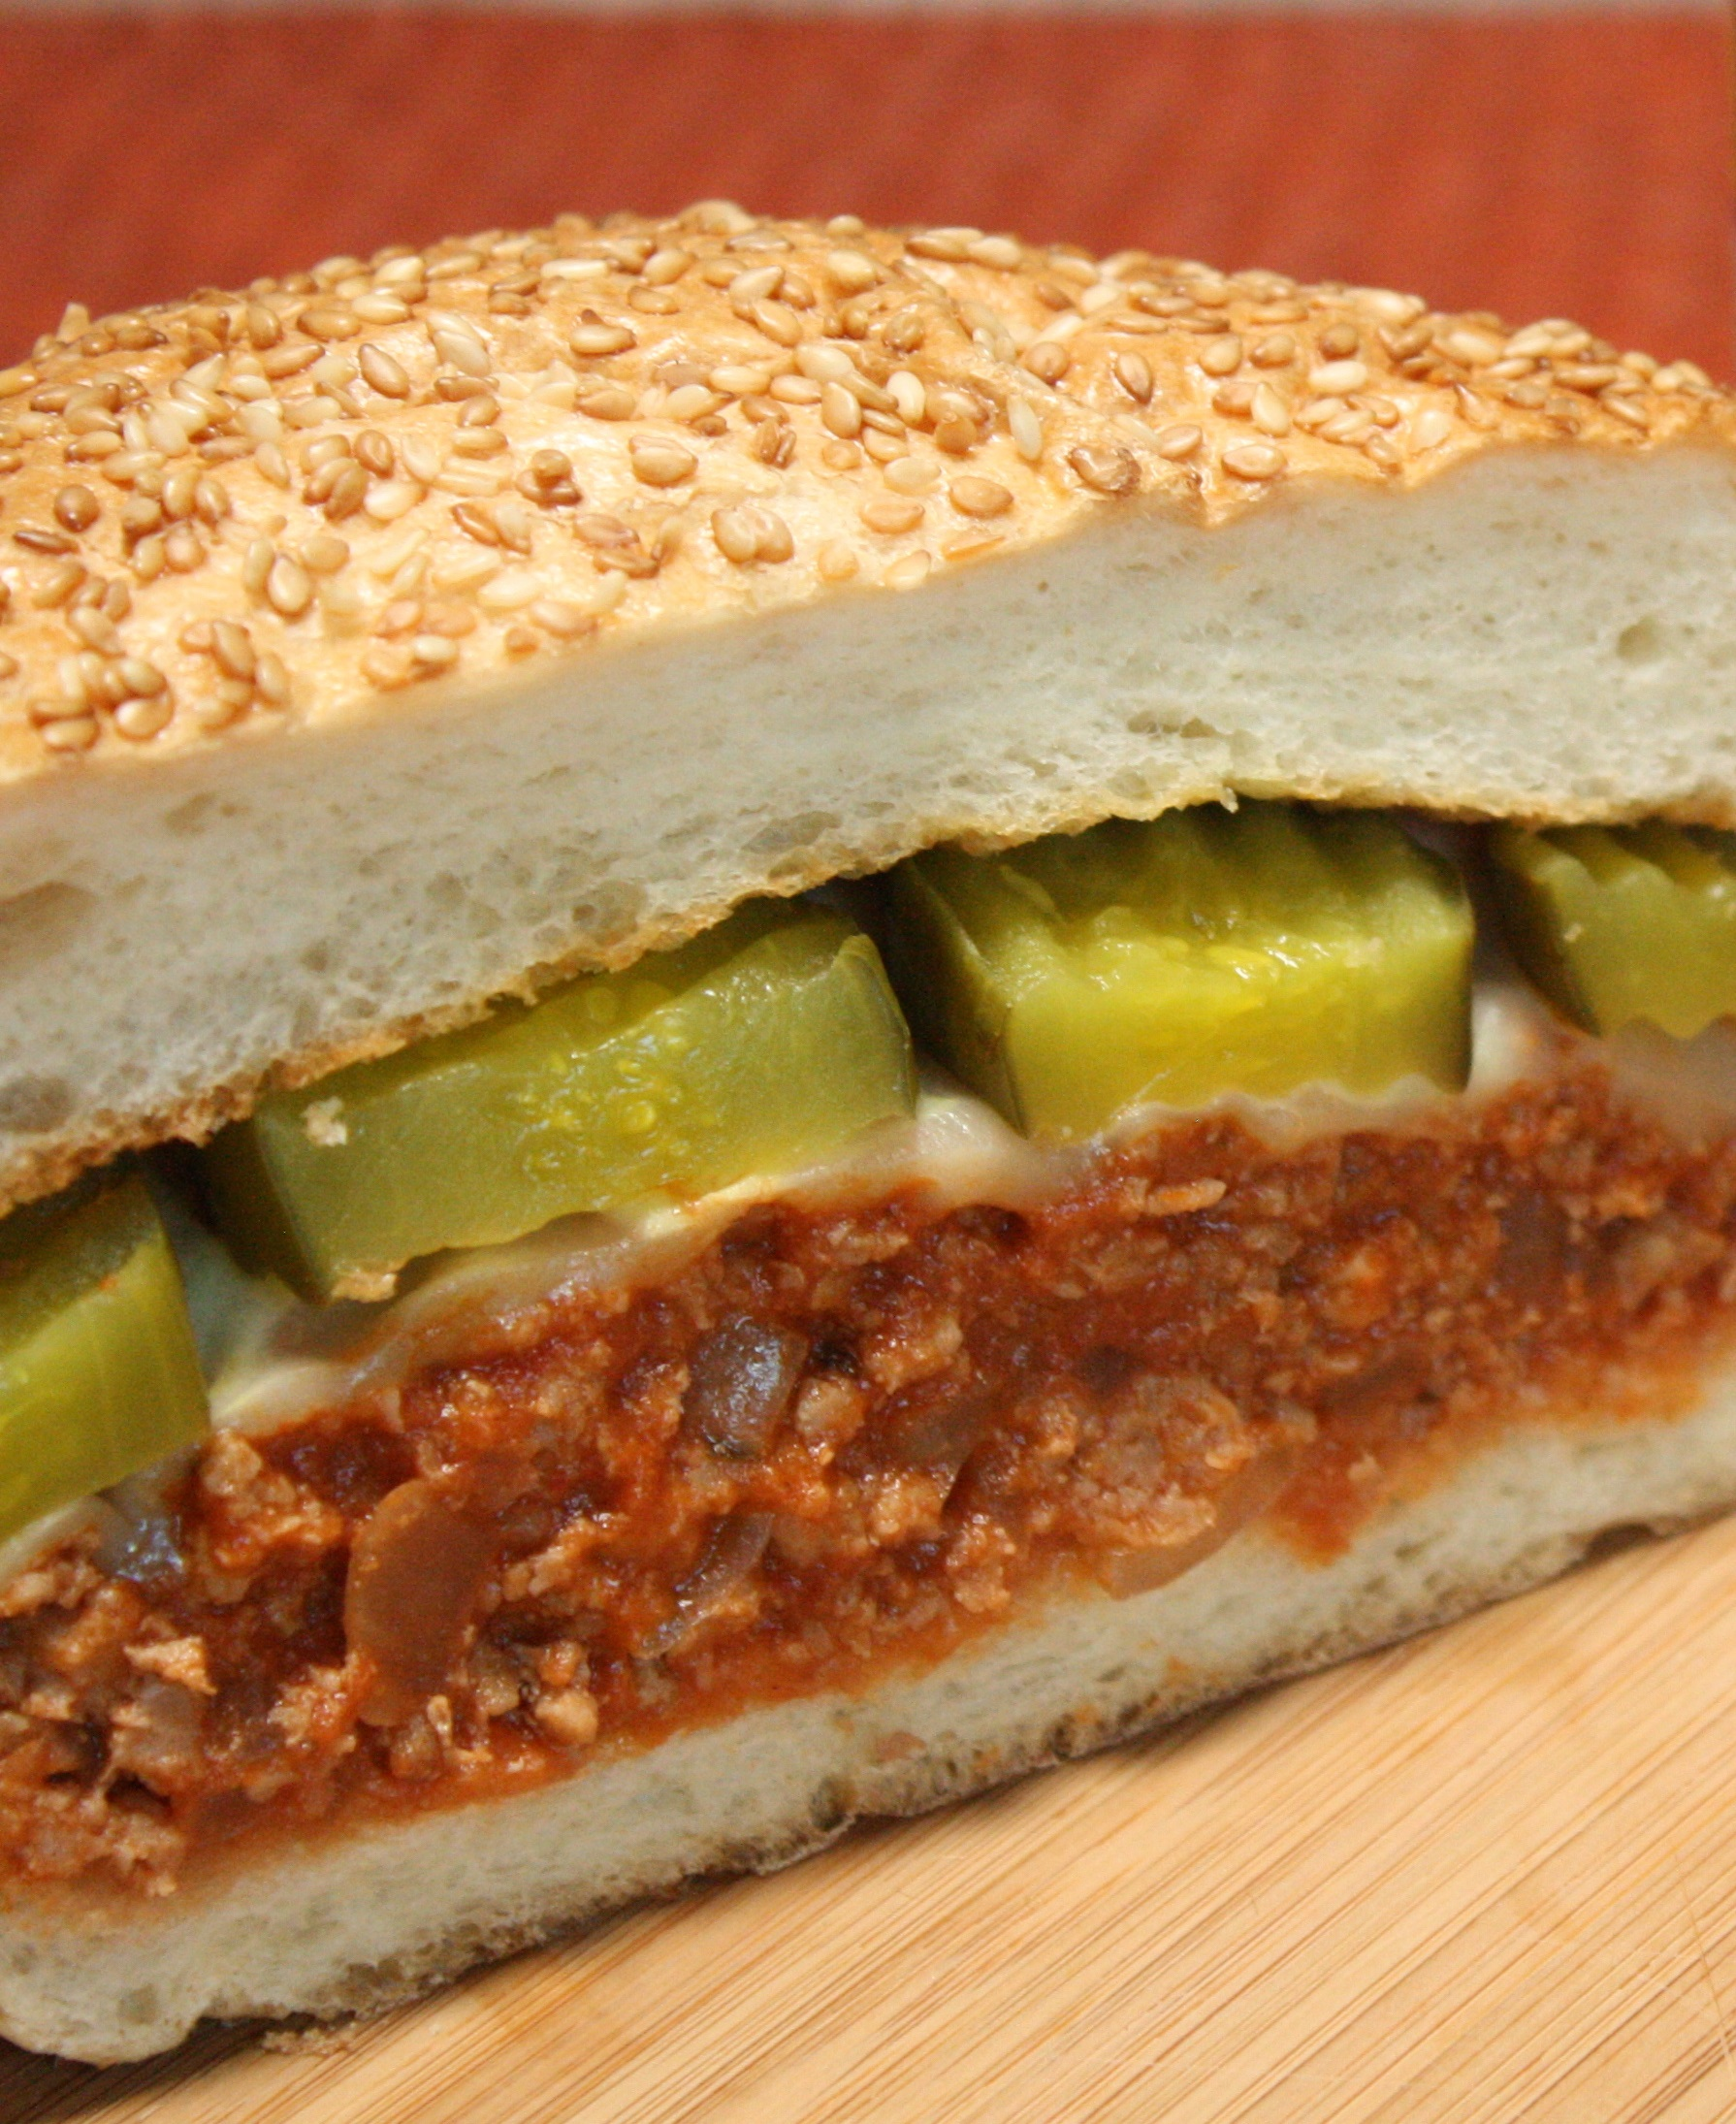 ... Dish Sandwiches and Wraps Turkey Sloppy Joes with Bread & Butter Chips